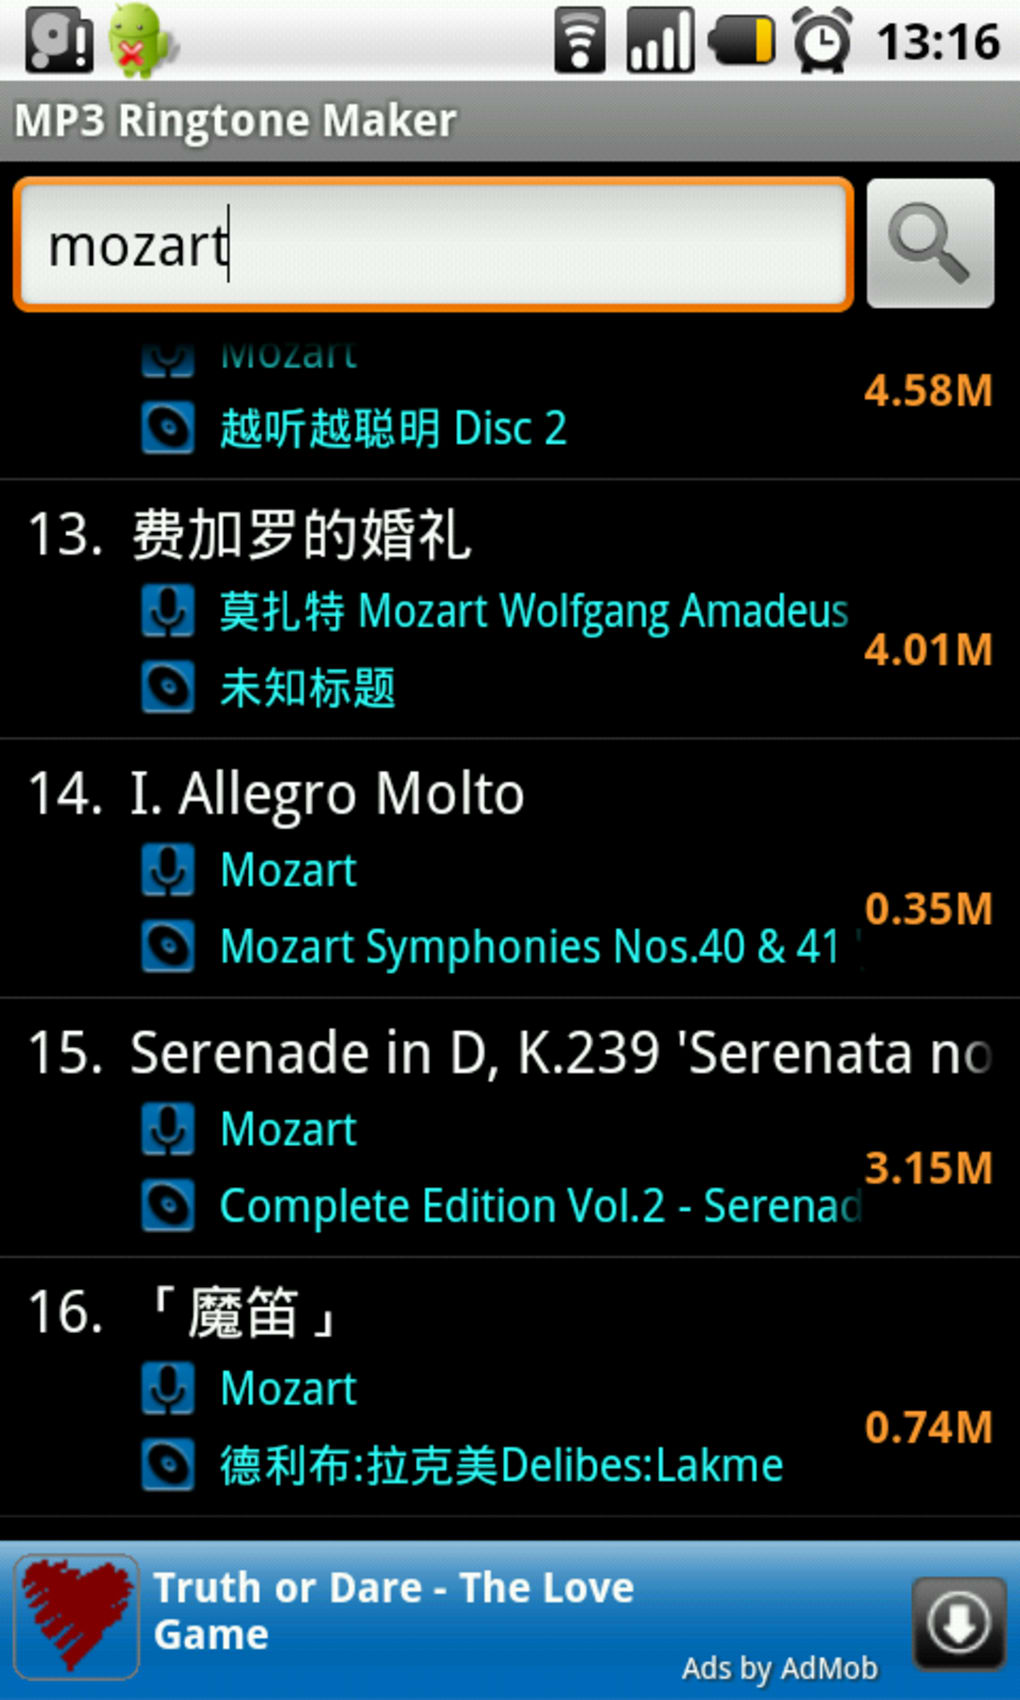 MP3 Ringtone Maker. 1/4 Screenshots